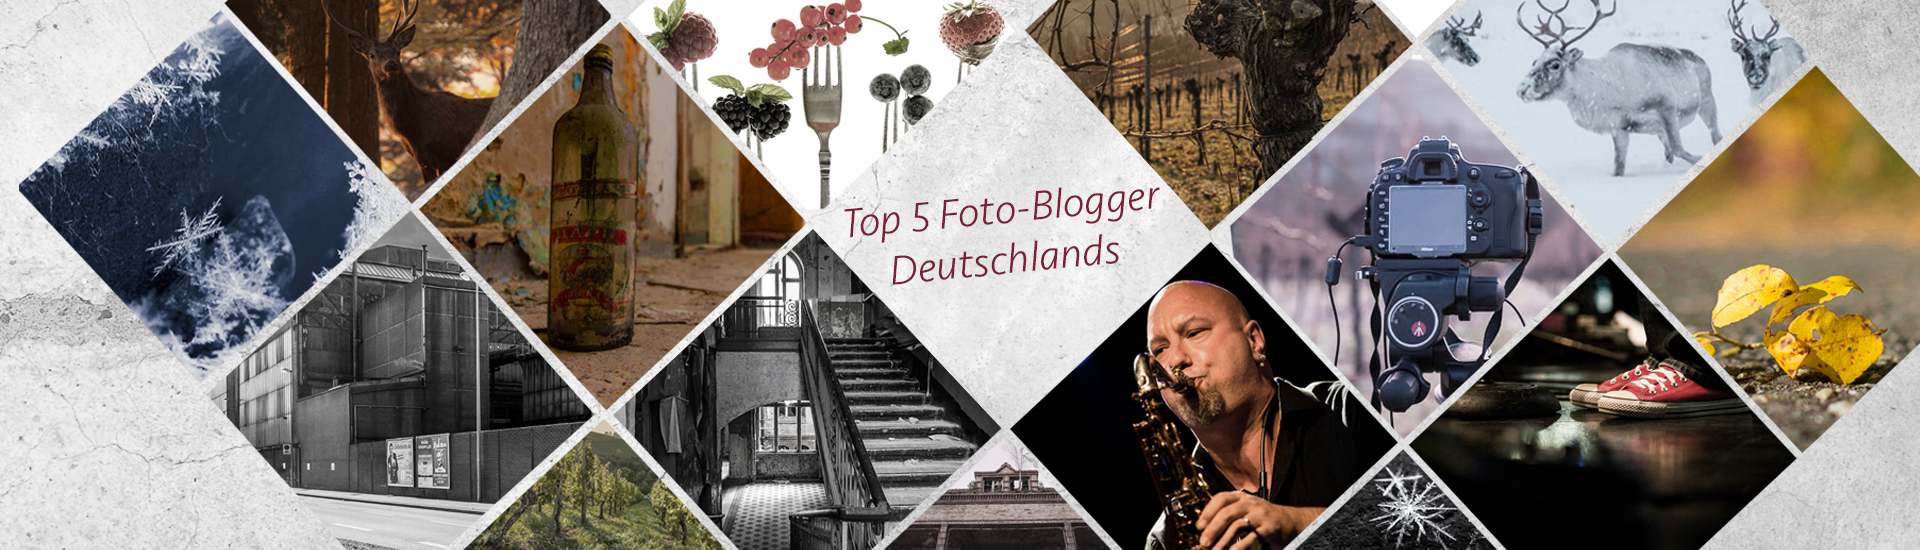 Header Top5-Foto-Blogger Deutschlands